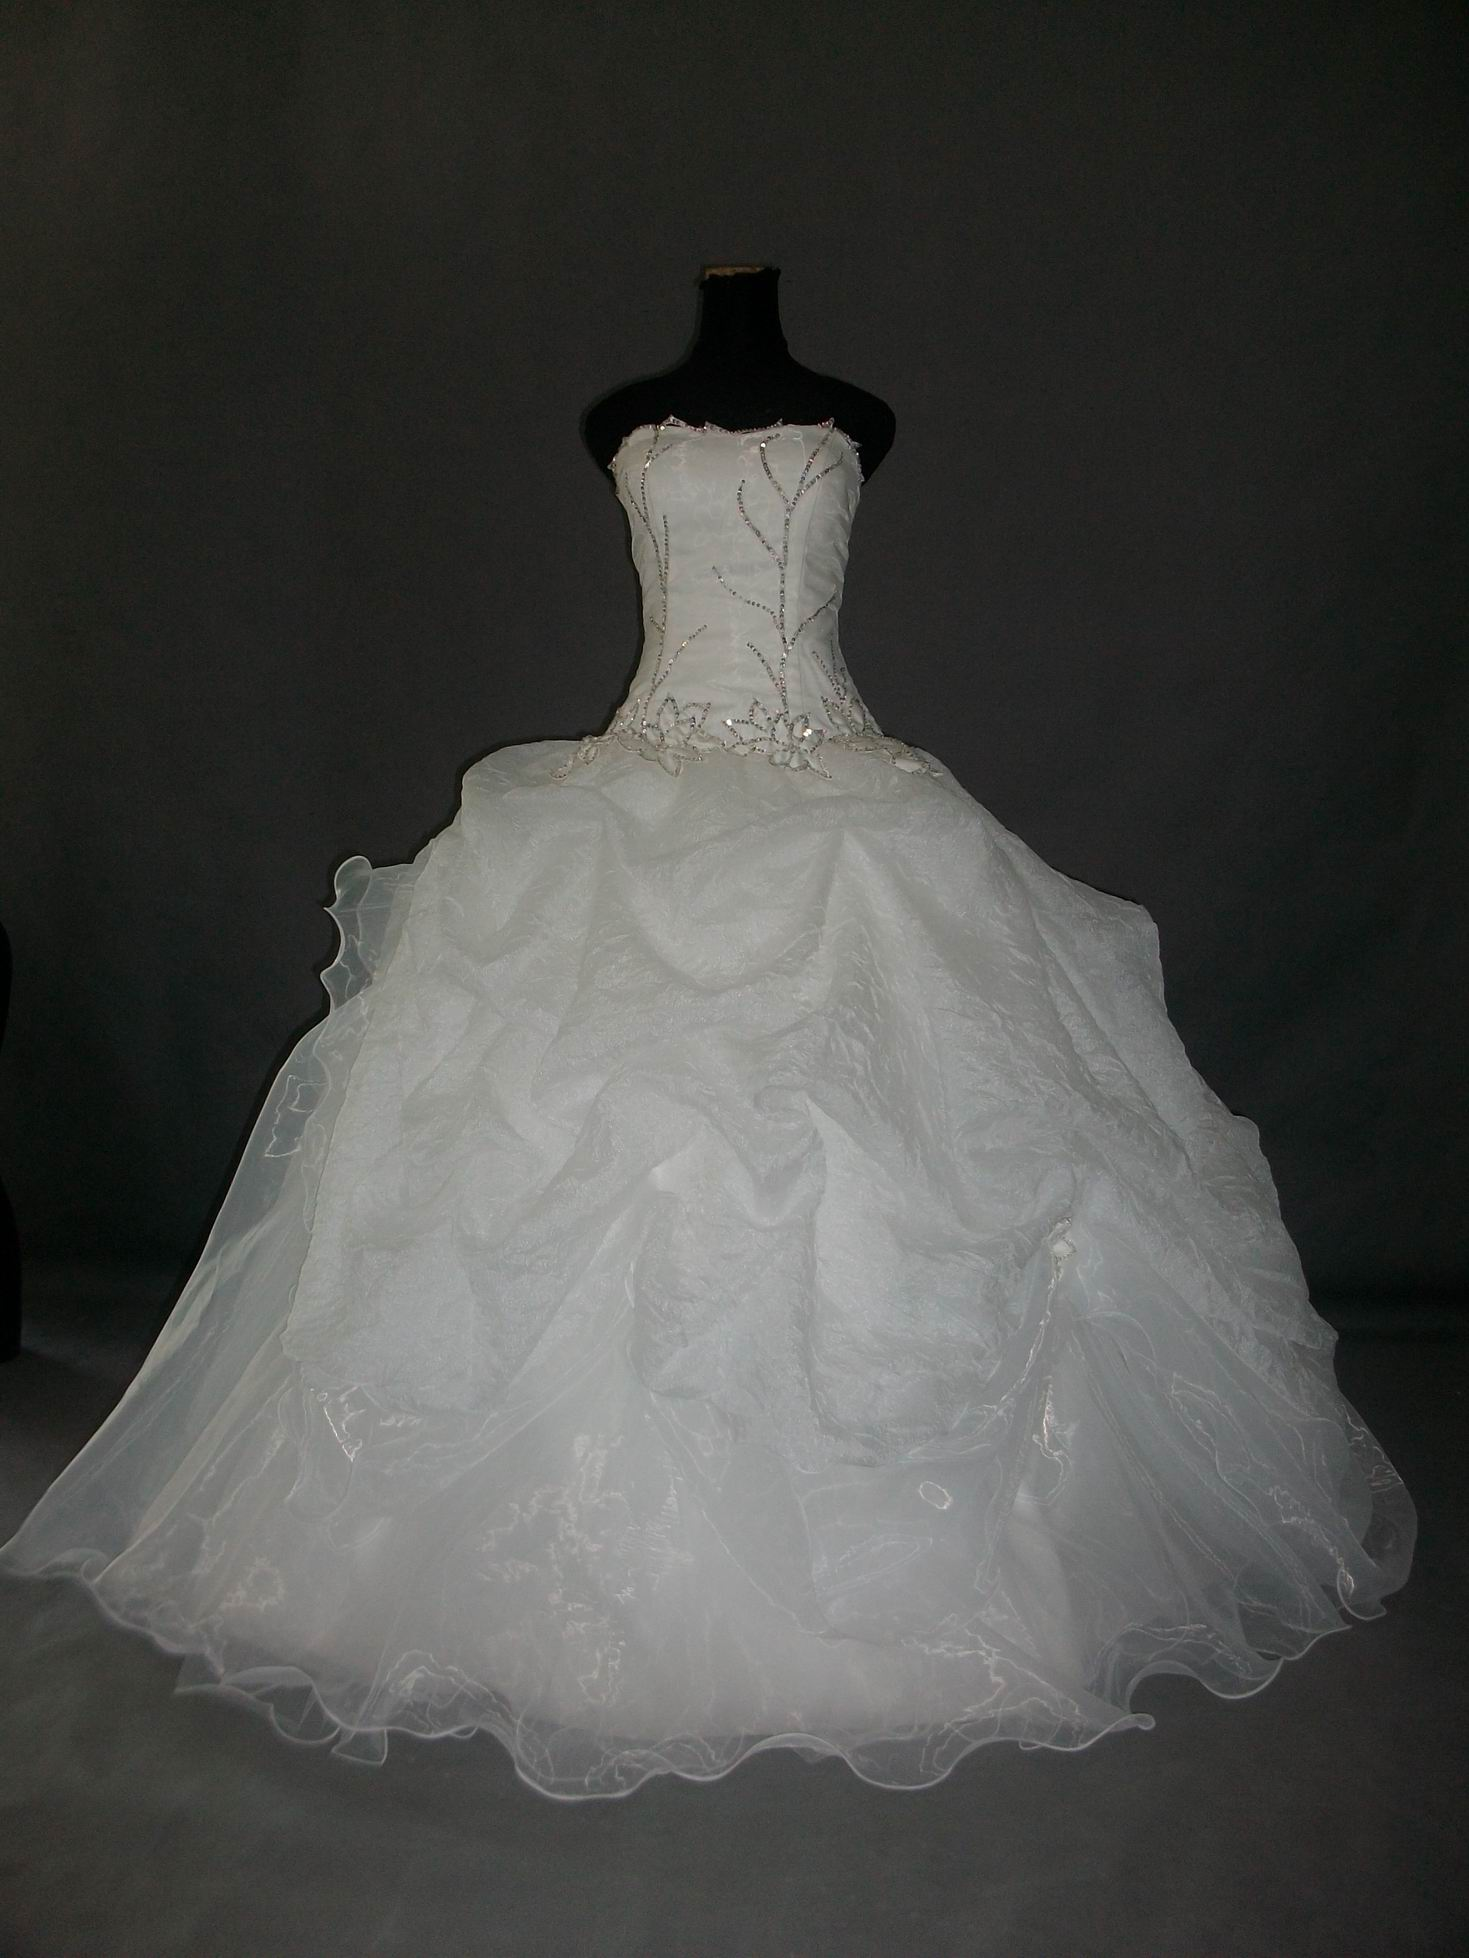 Ruched ballroom wedding gown.